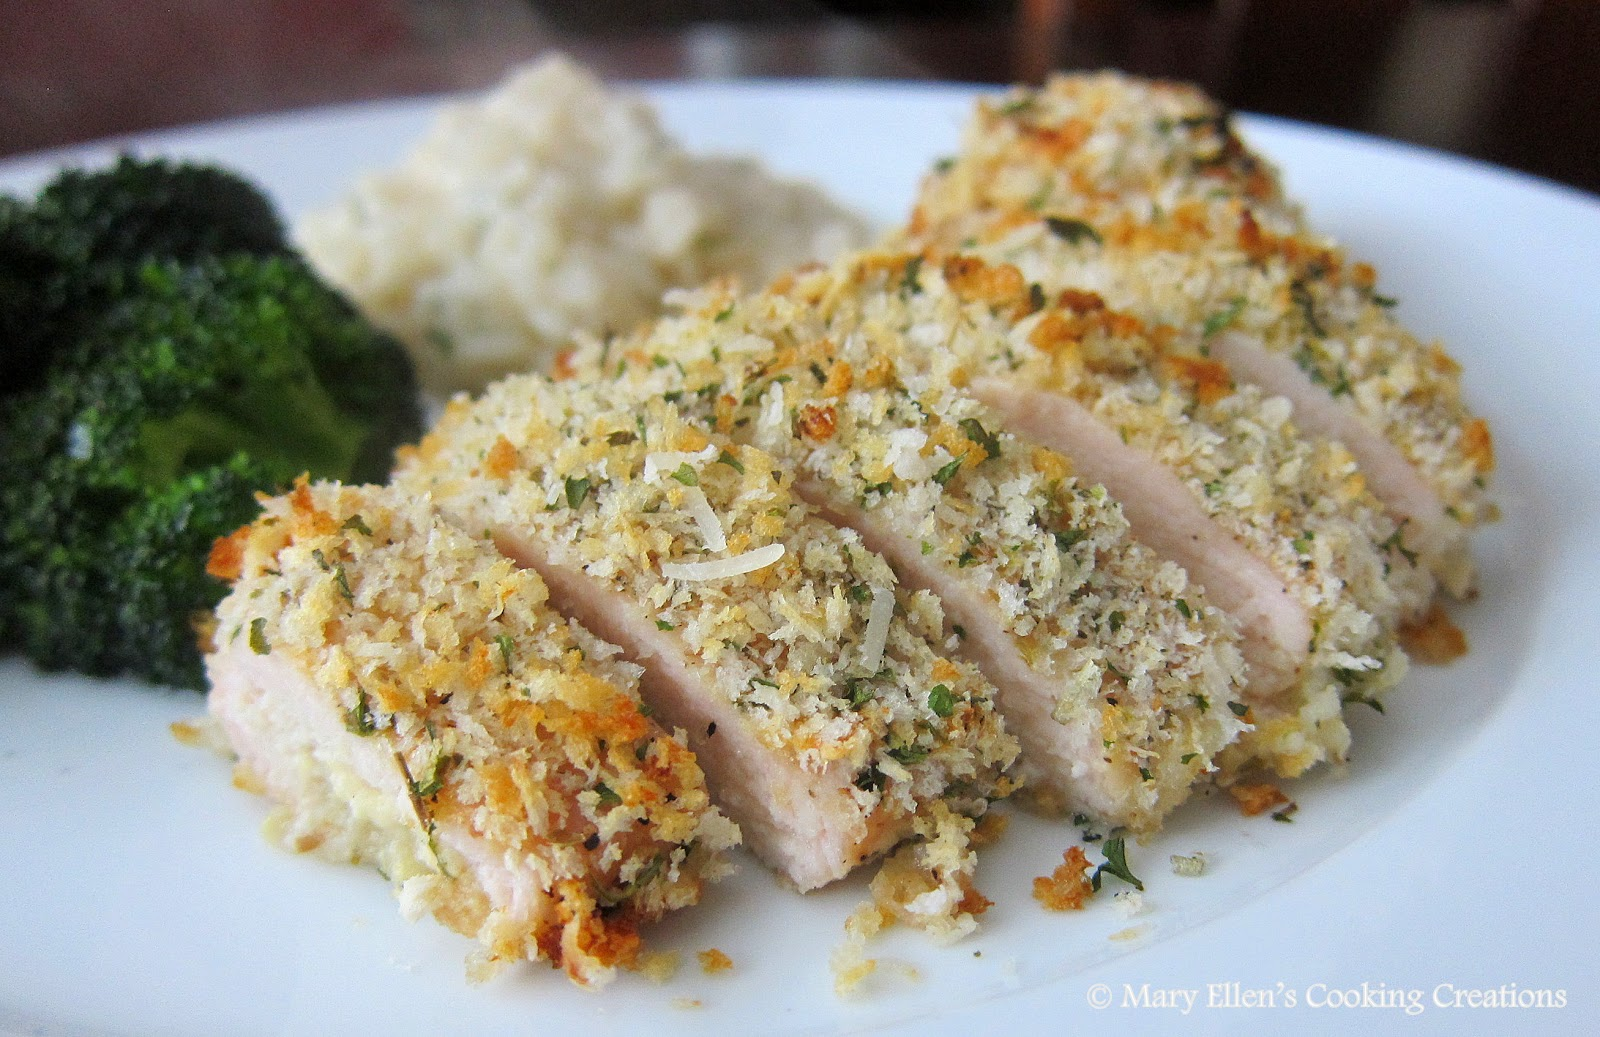 ... Ellen's Cooking Creations: Dijon-Garlic-Herb Panko Crusted Chicken